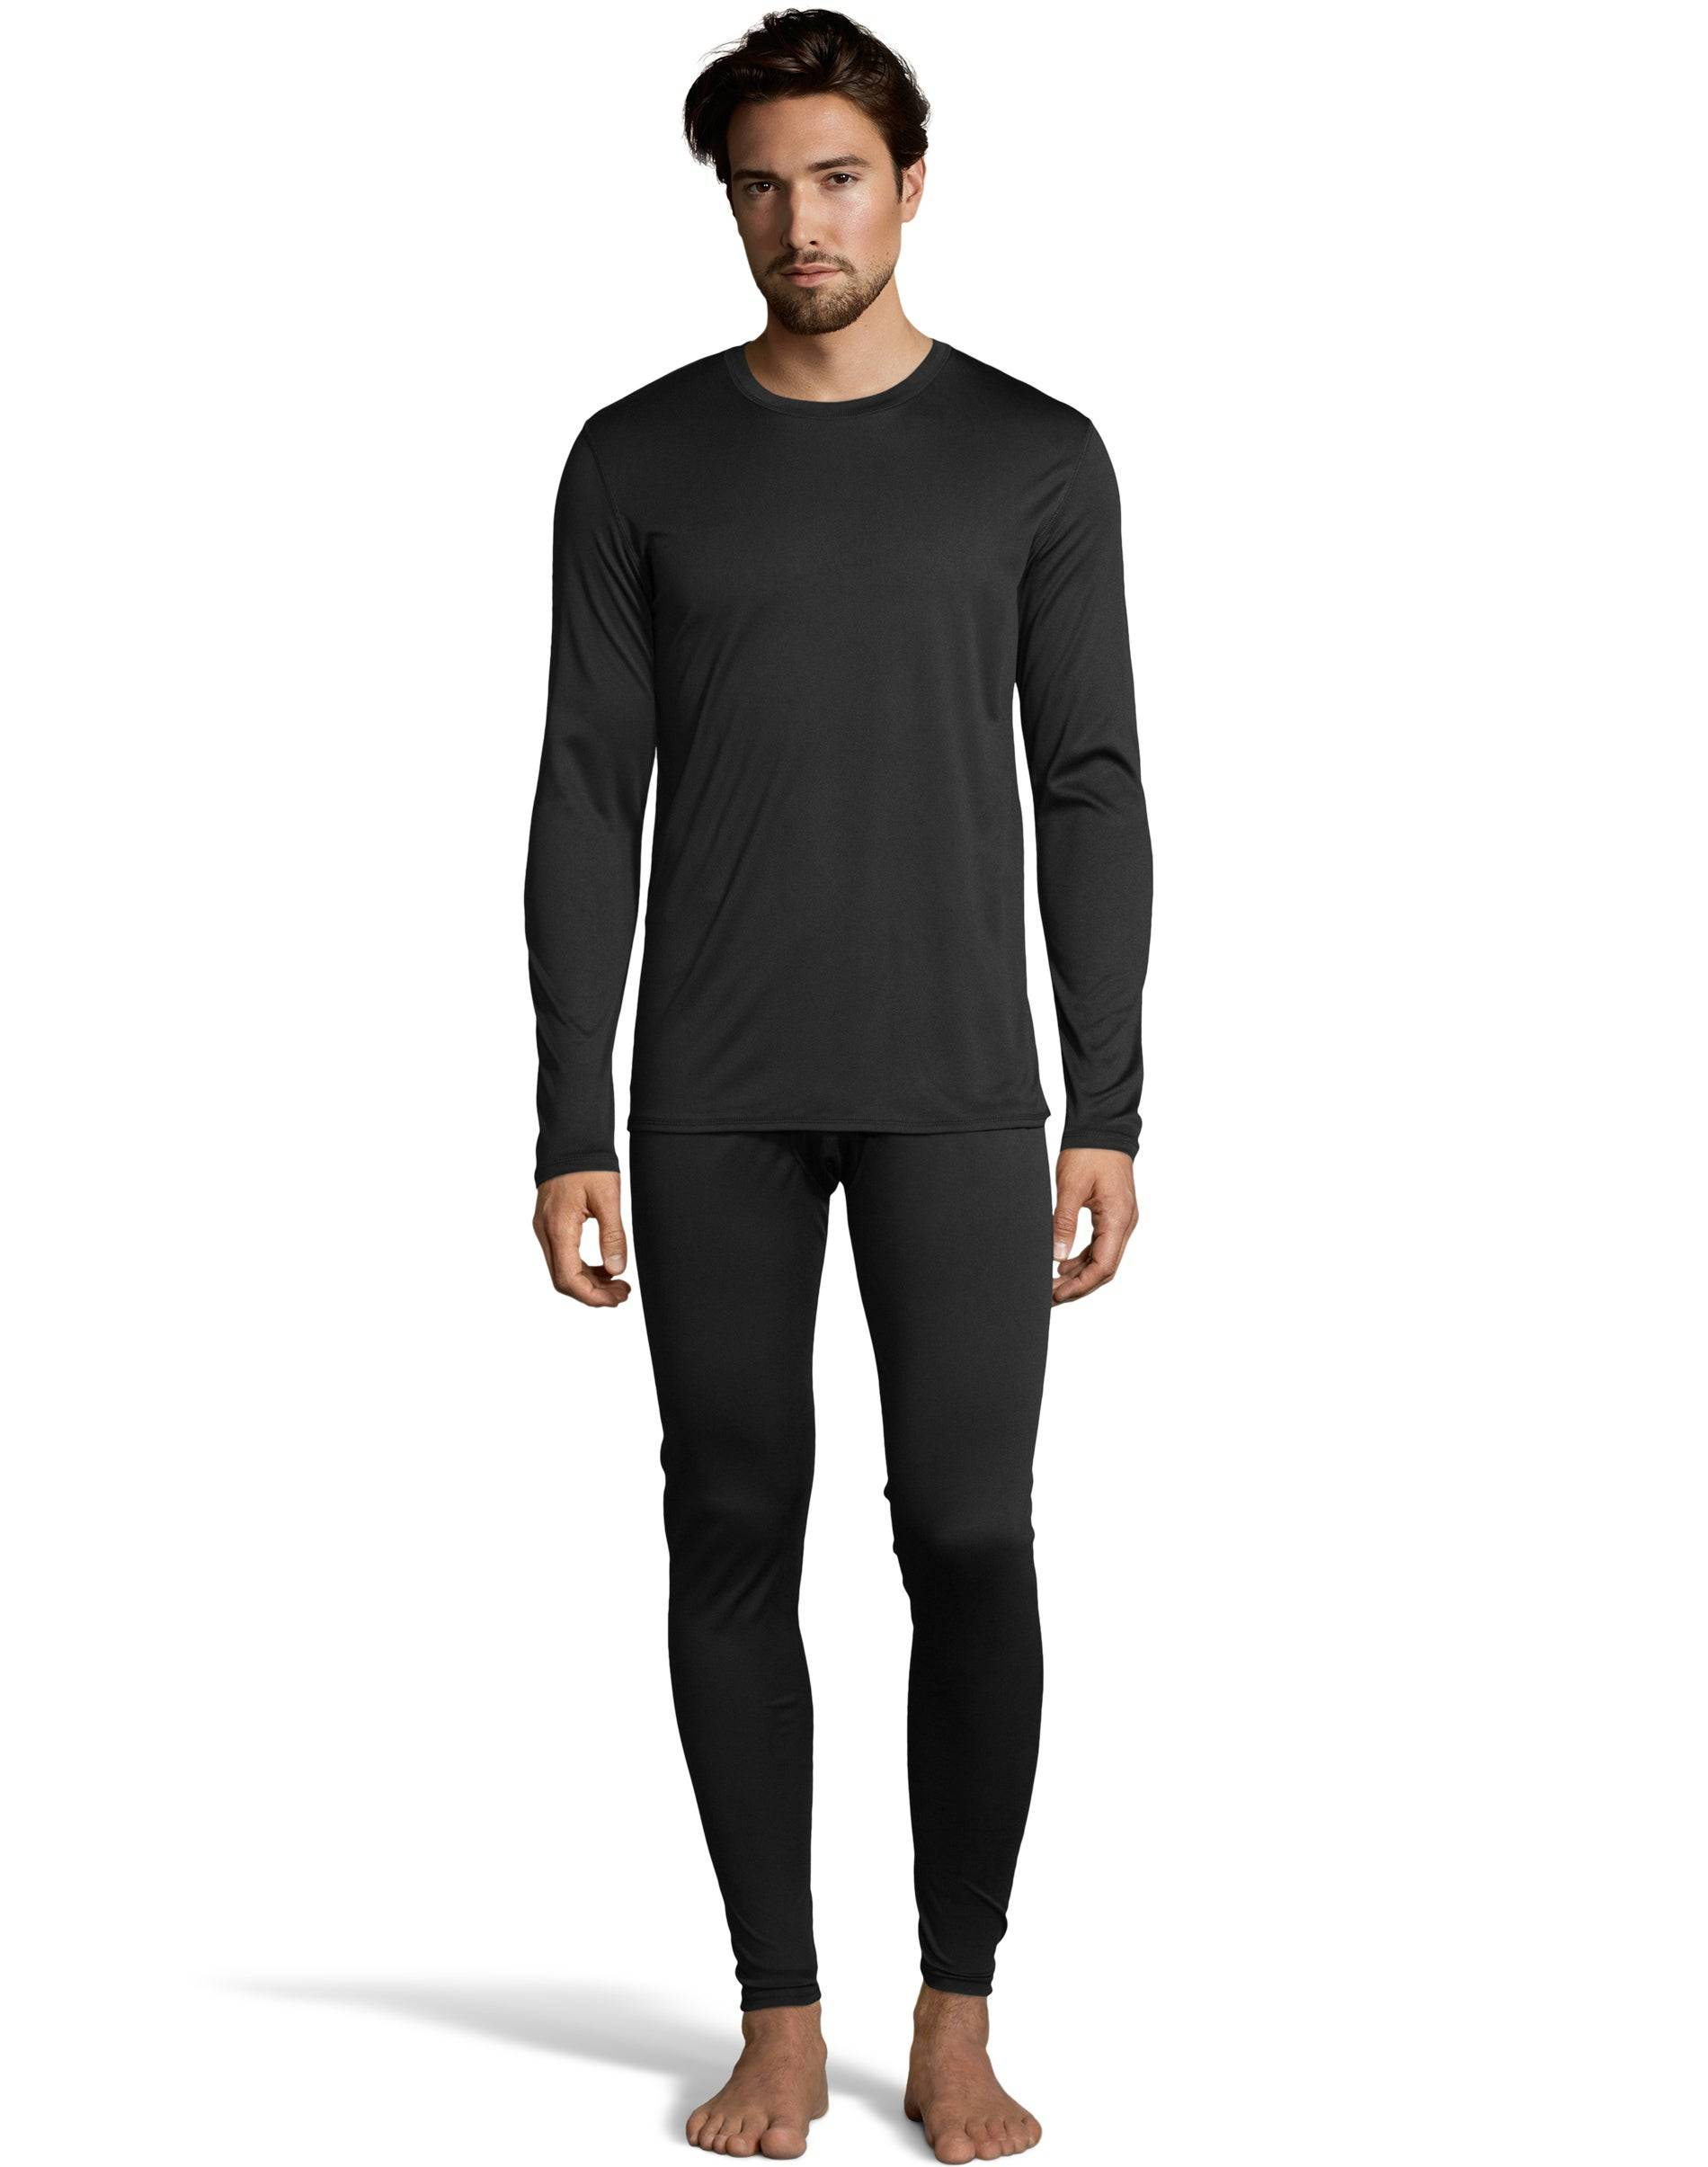 Cuddl Duds Climate Essentials by Cuddl Duds Men's Poly Thermal Set Black 2XL